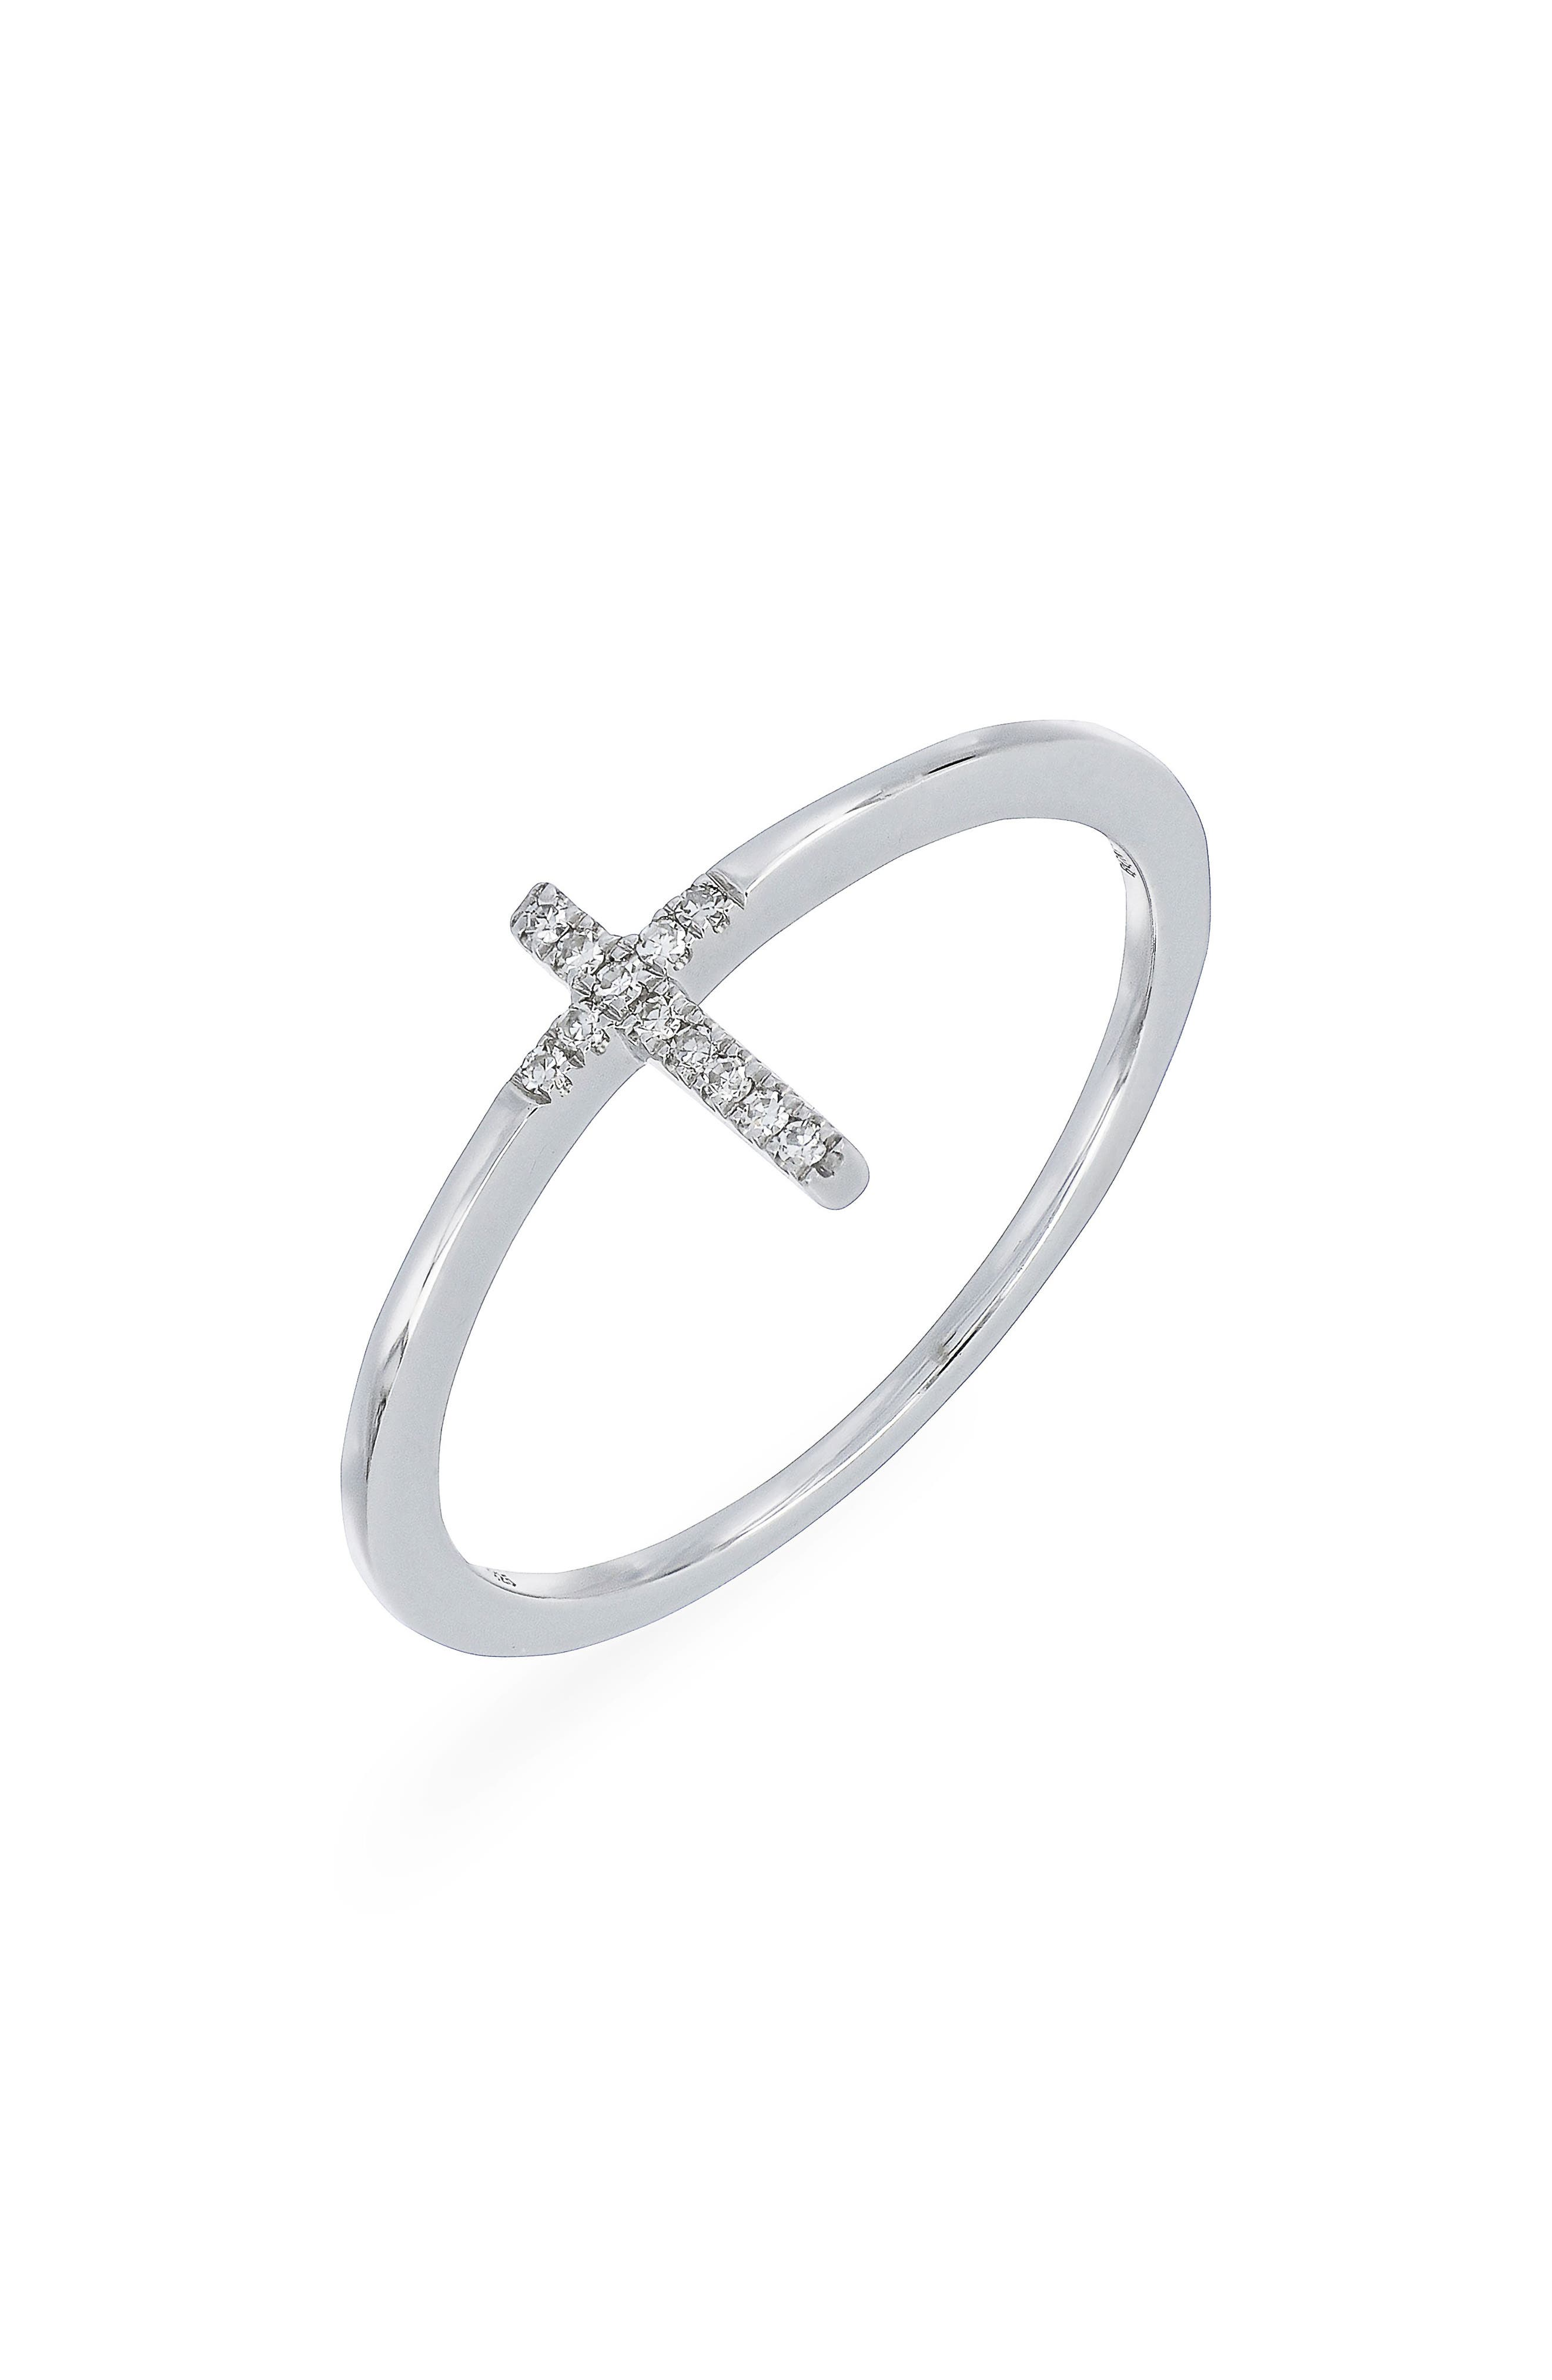 Carrière Diamond Cross Ring,                             Main thumbnail 1, color,                             Sterling Silver/ Diamond